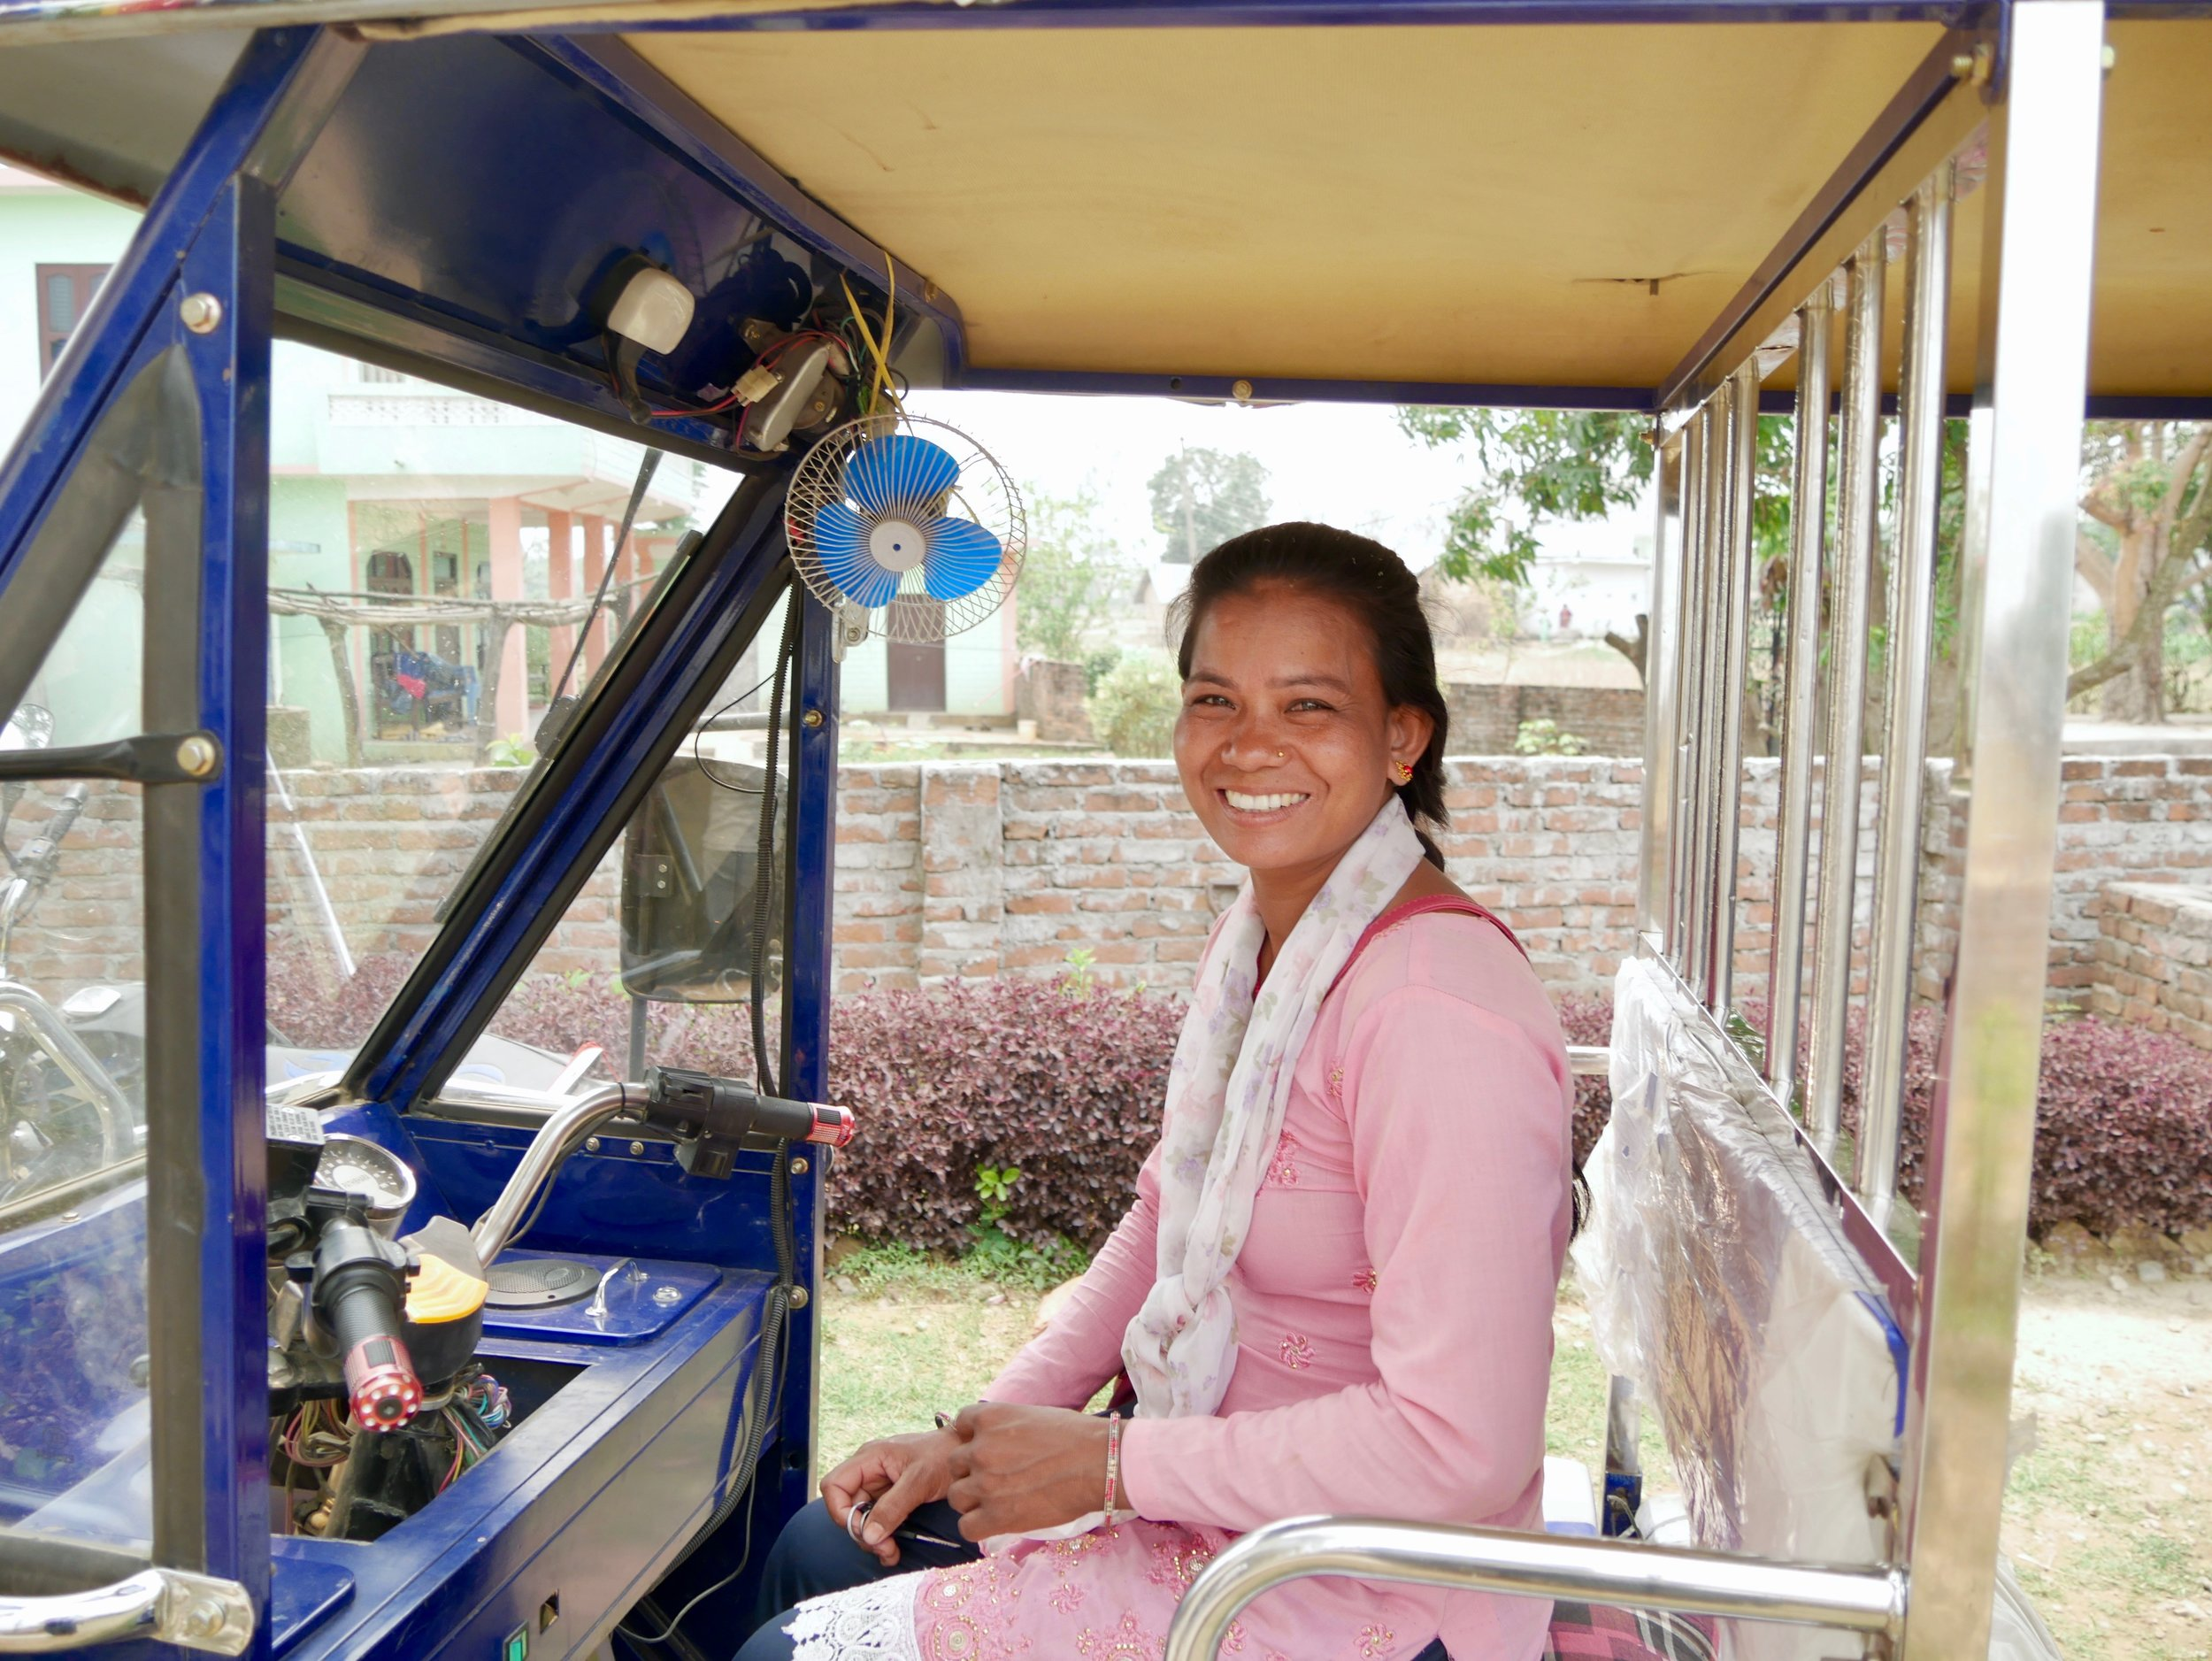 Pharma took a loan from her group to become the first female auto rickshaw driver in the area.